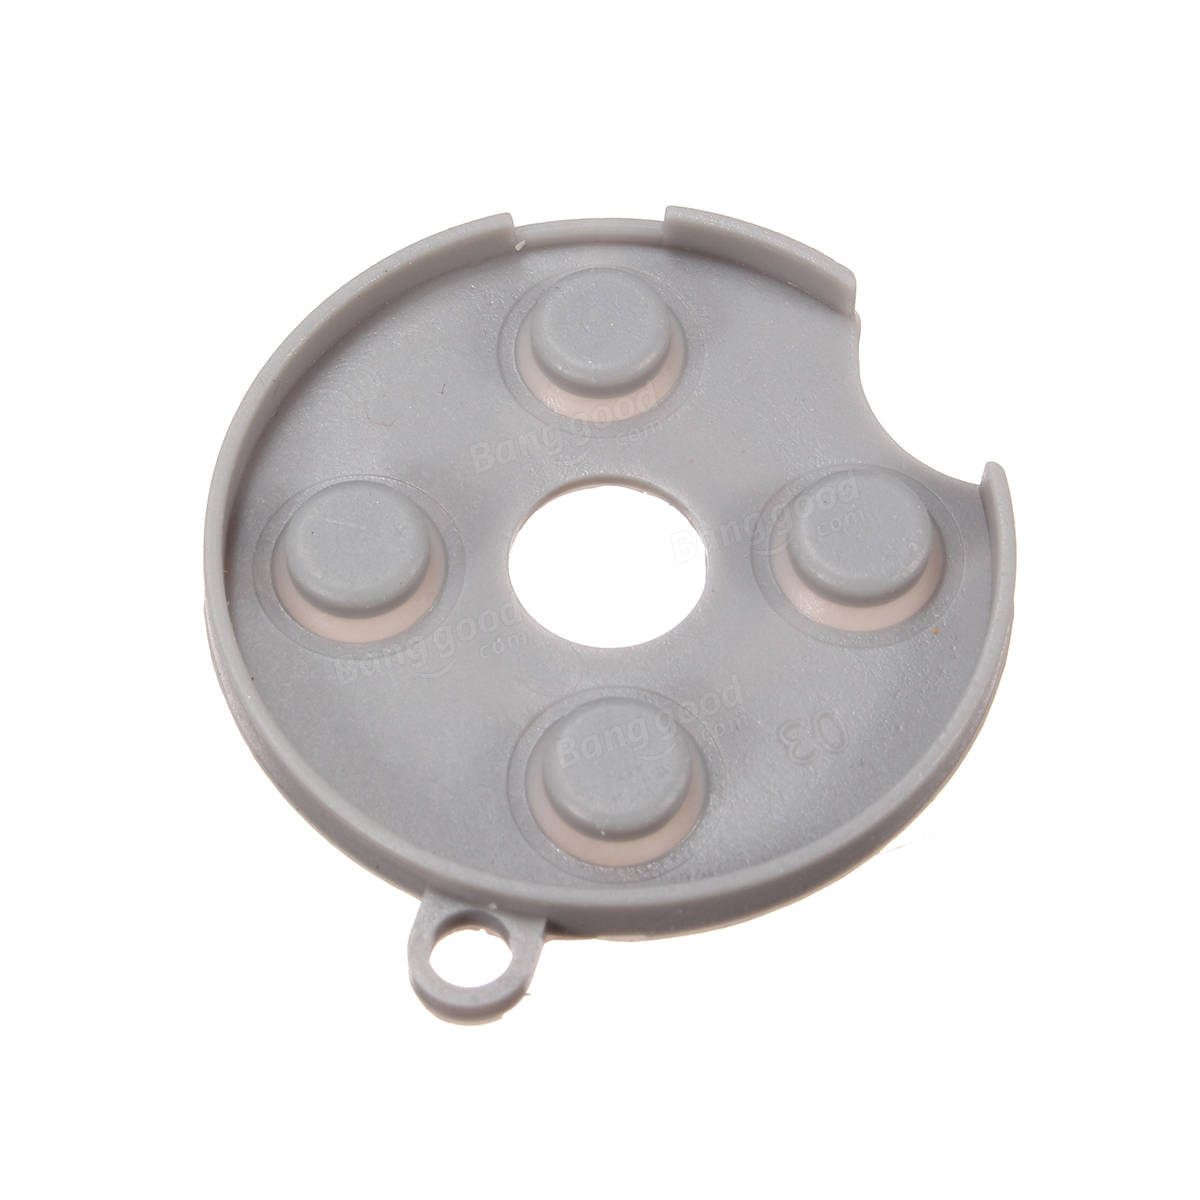 Controller Conductive Rubber Contact Pad Button D-Pad for Microsoft Xbox 360 Controllers Replacement